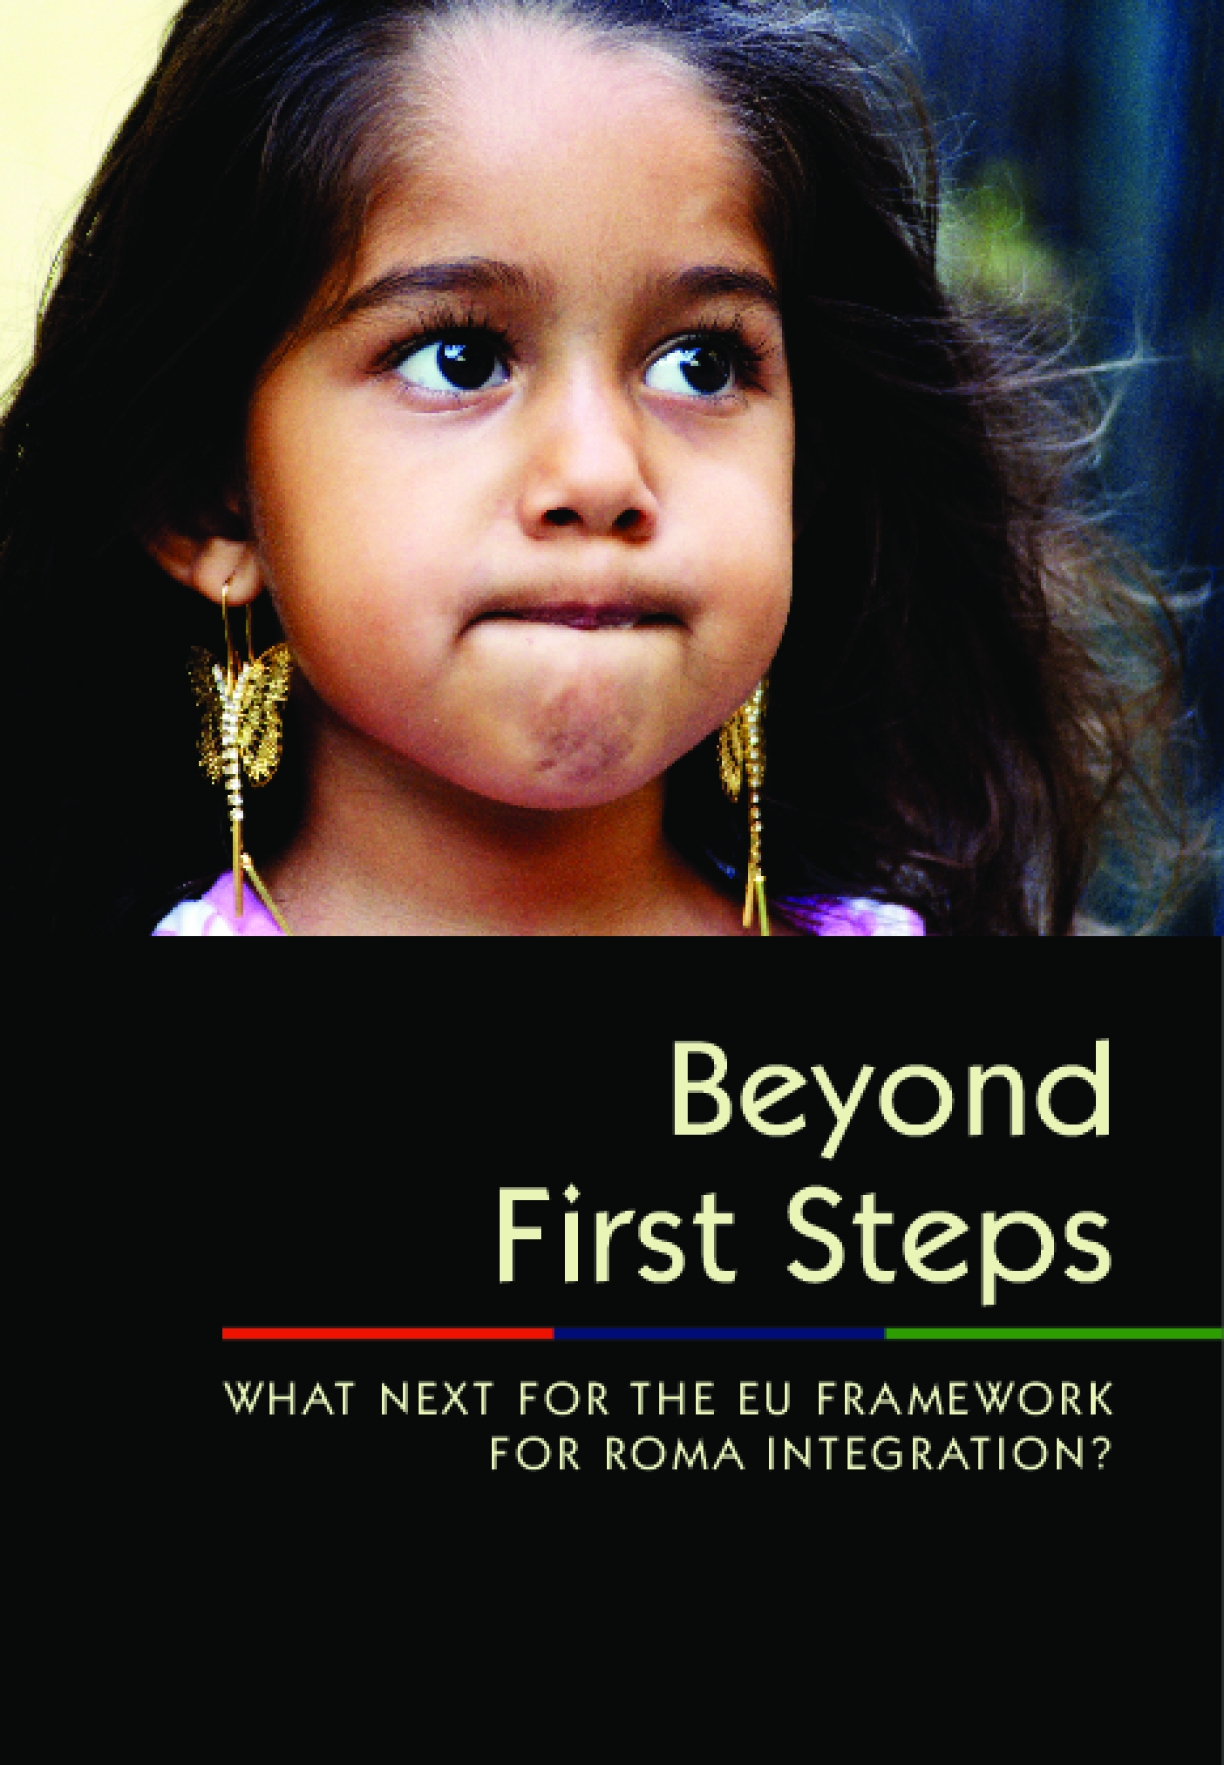 Beyond First Steps: What Next for the EU Framework for Roma Integration?